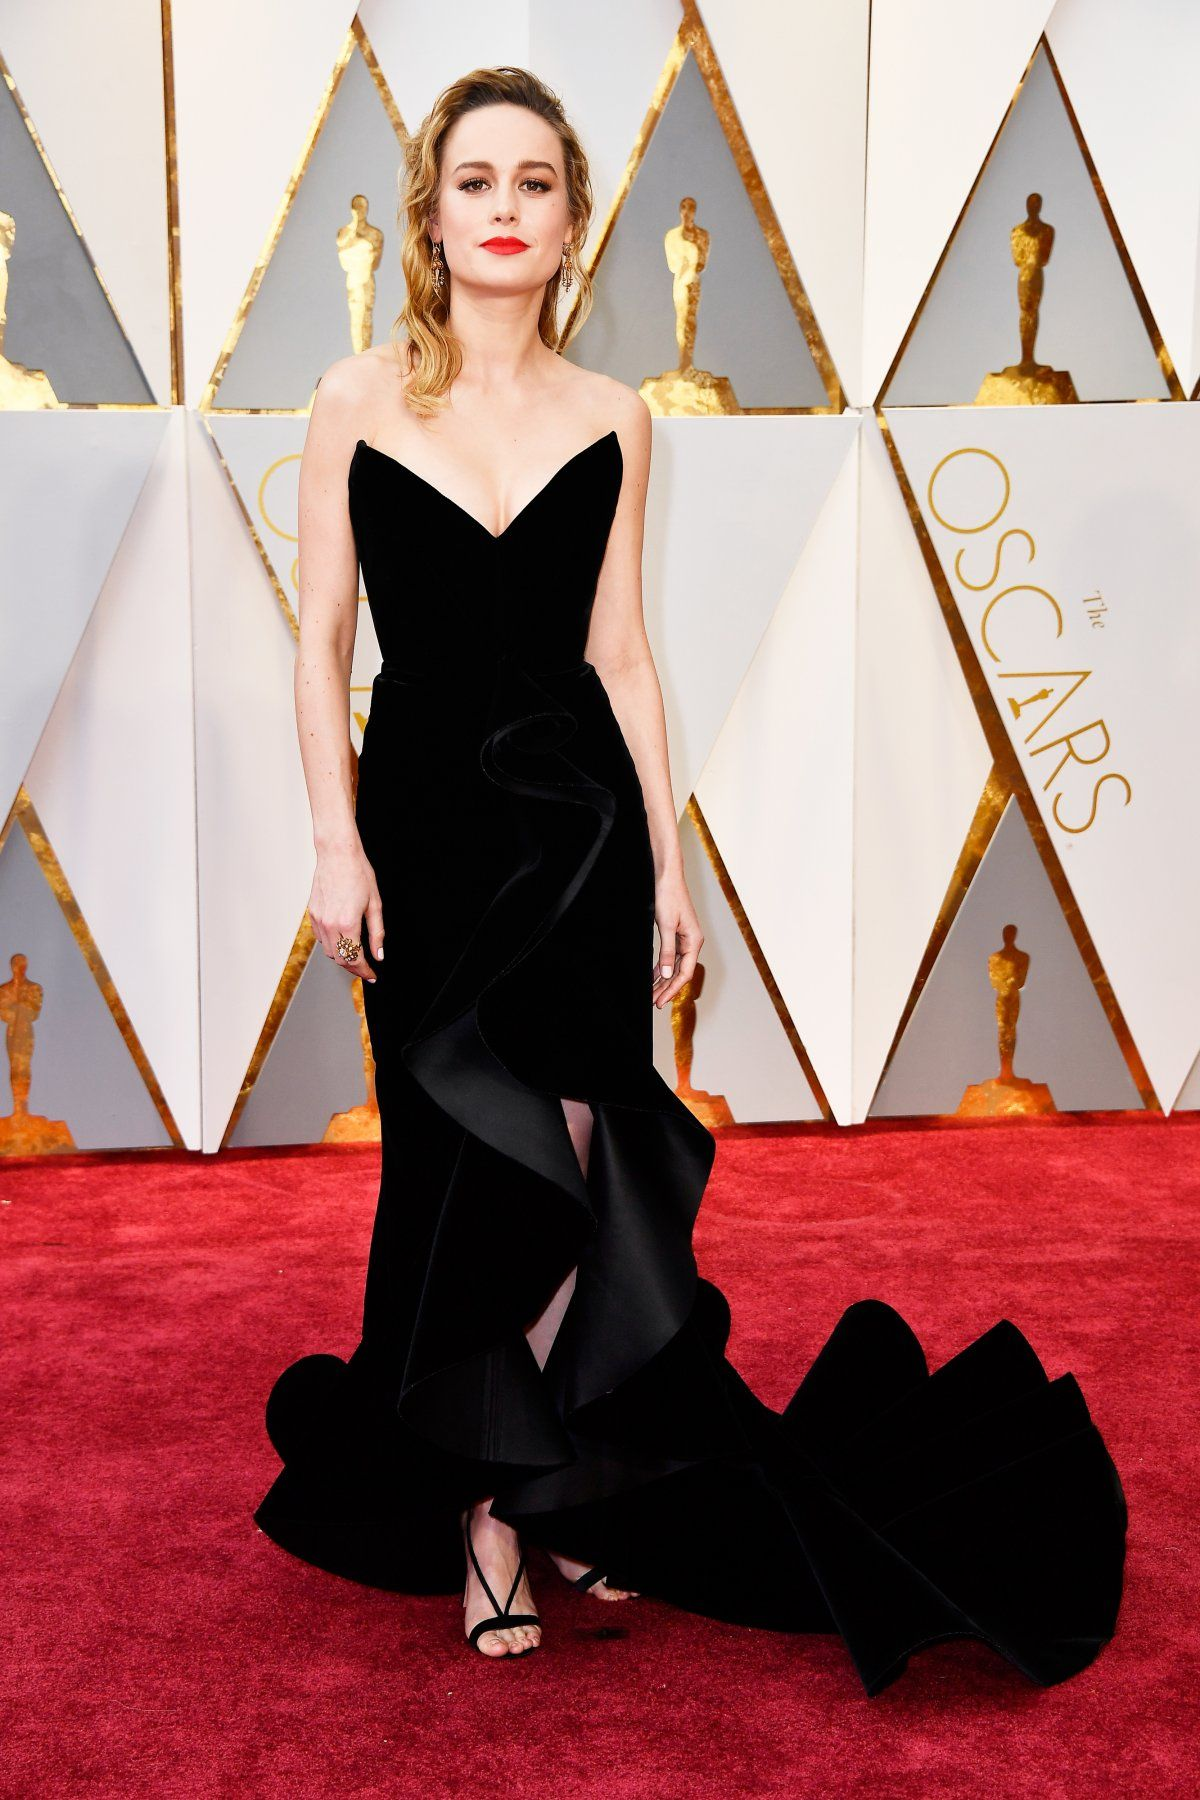 Here are all the looks from the oscars red carpet brie larson